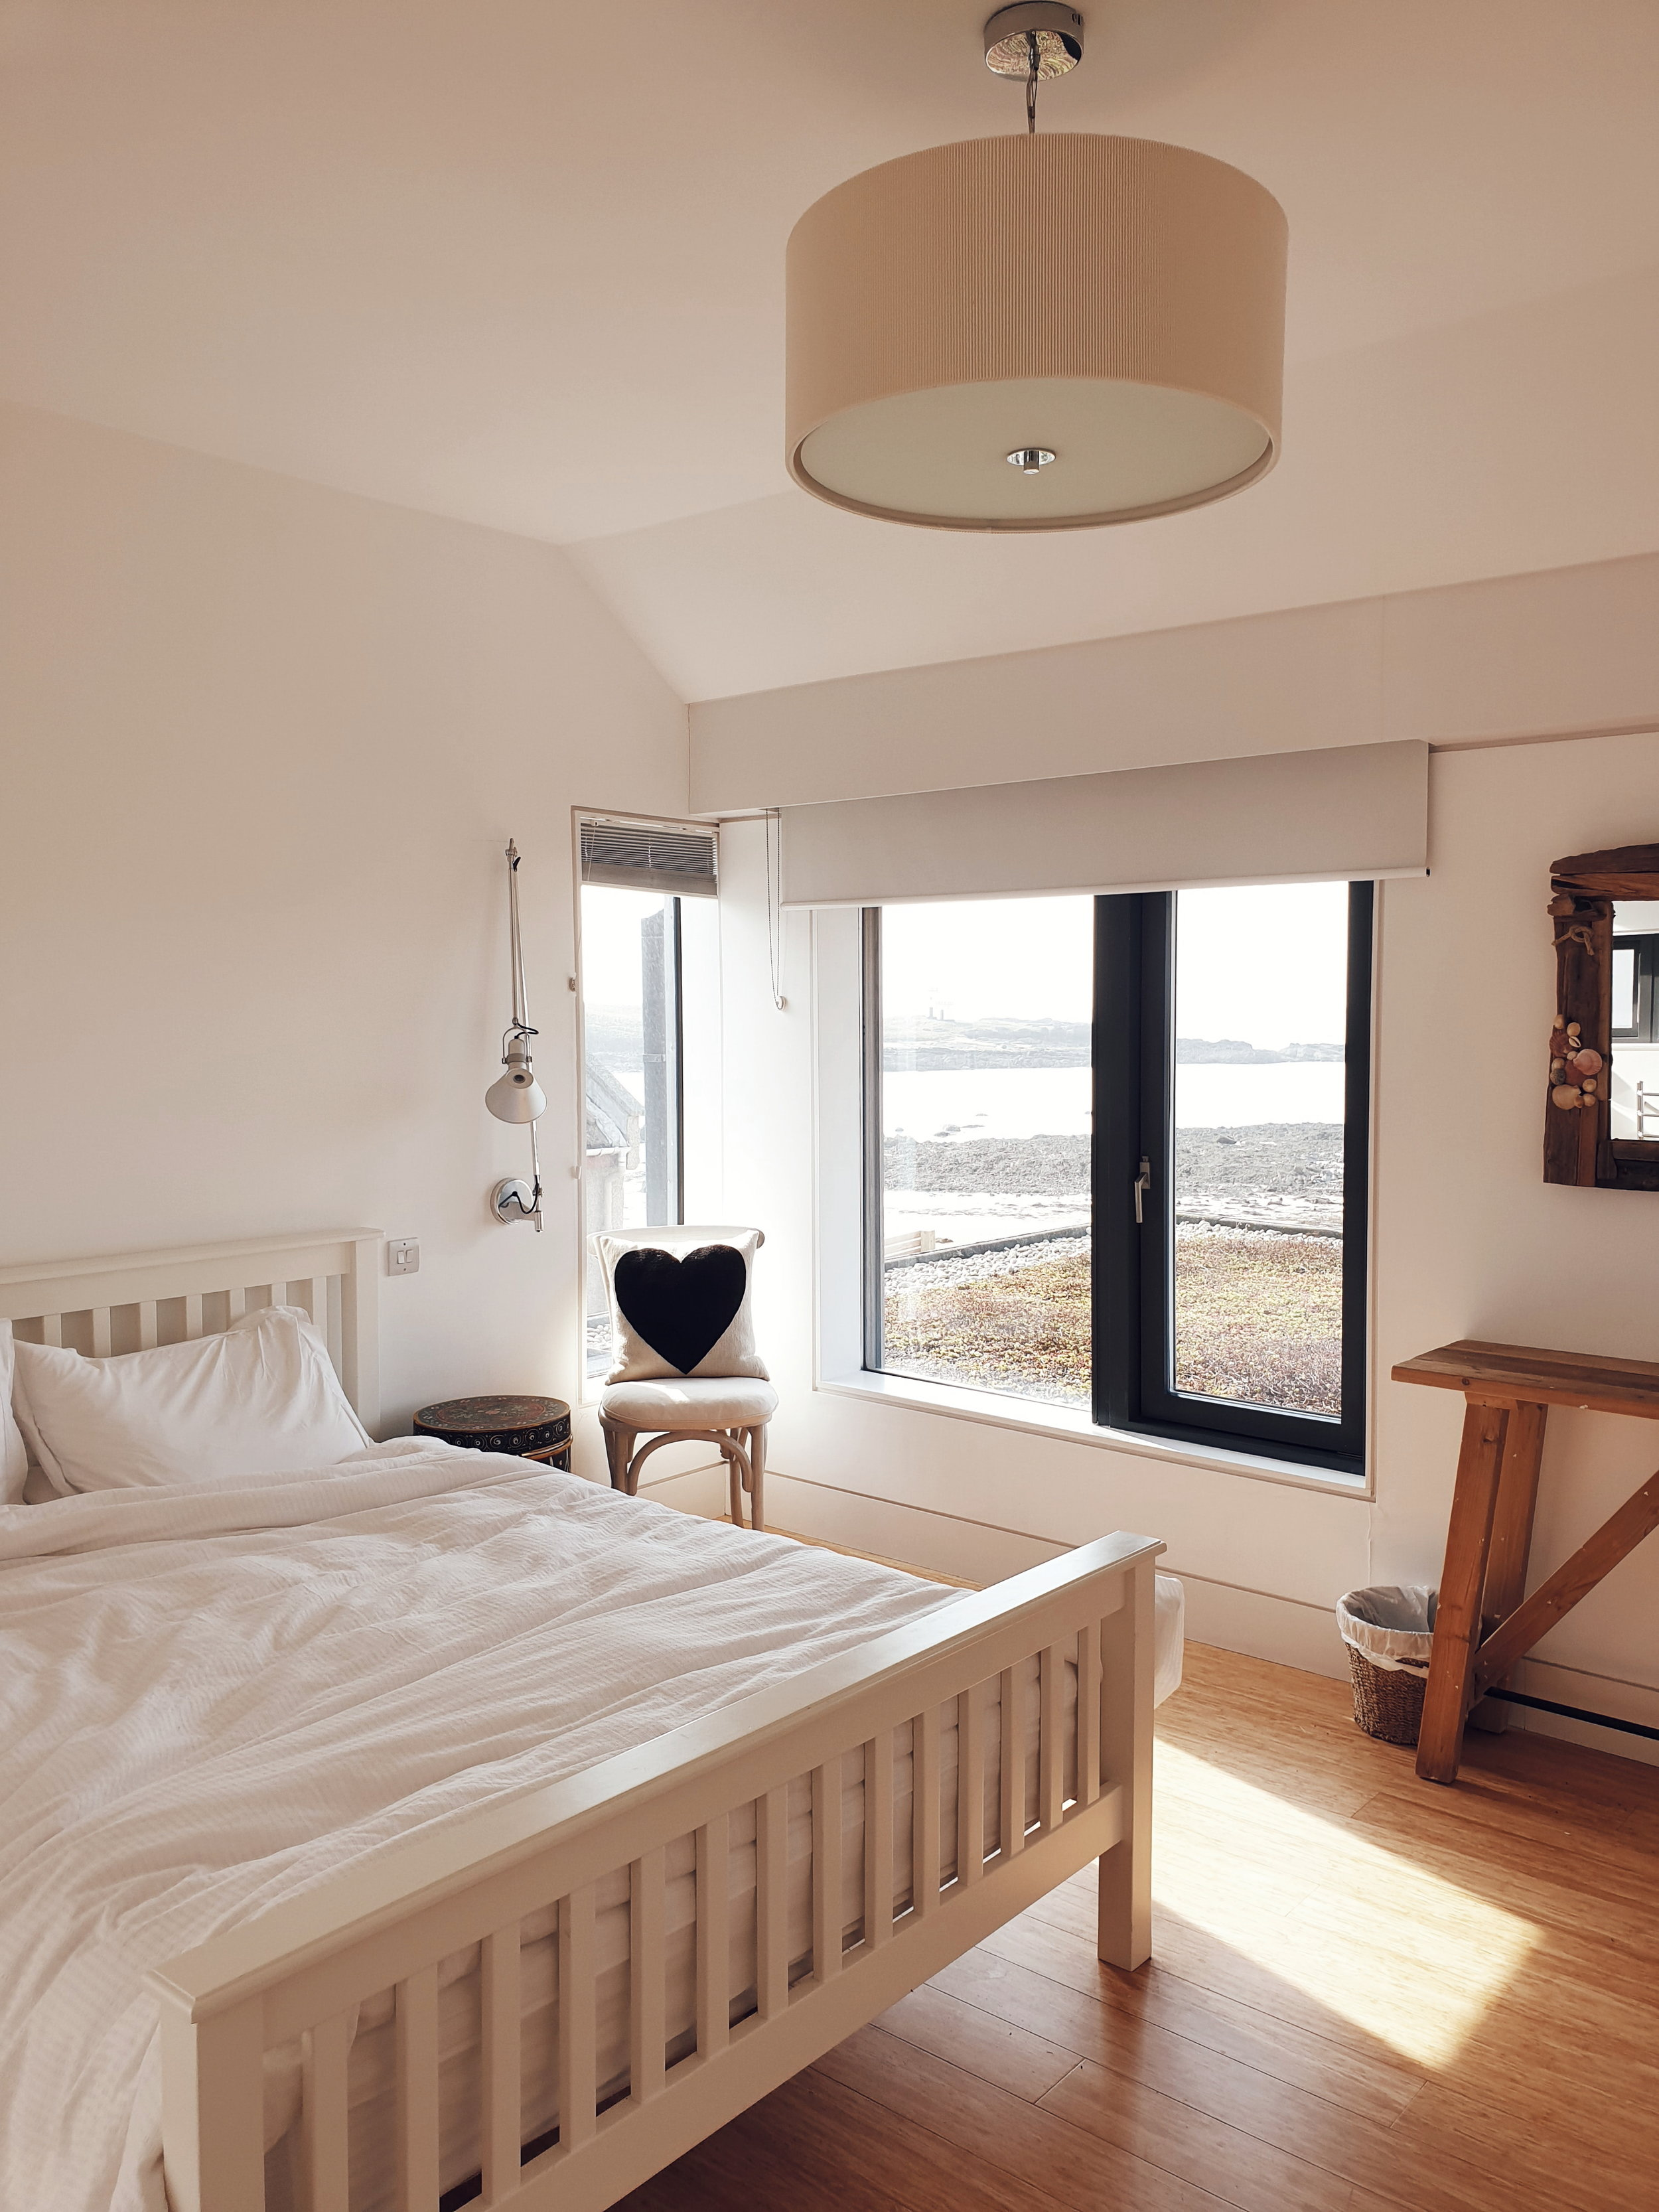 One of the bedrooms with views of a lighthouse